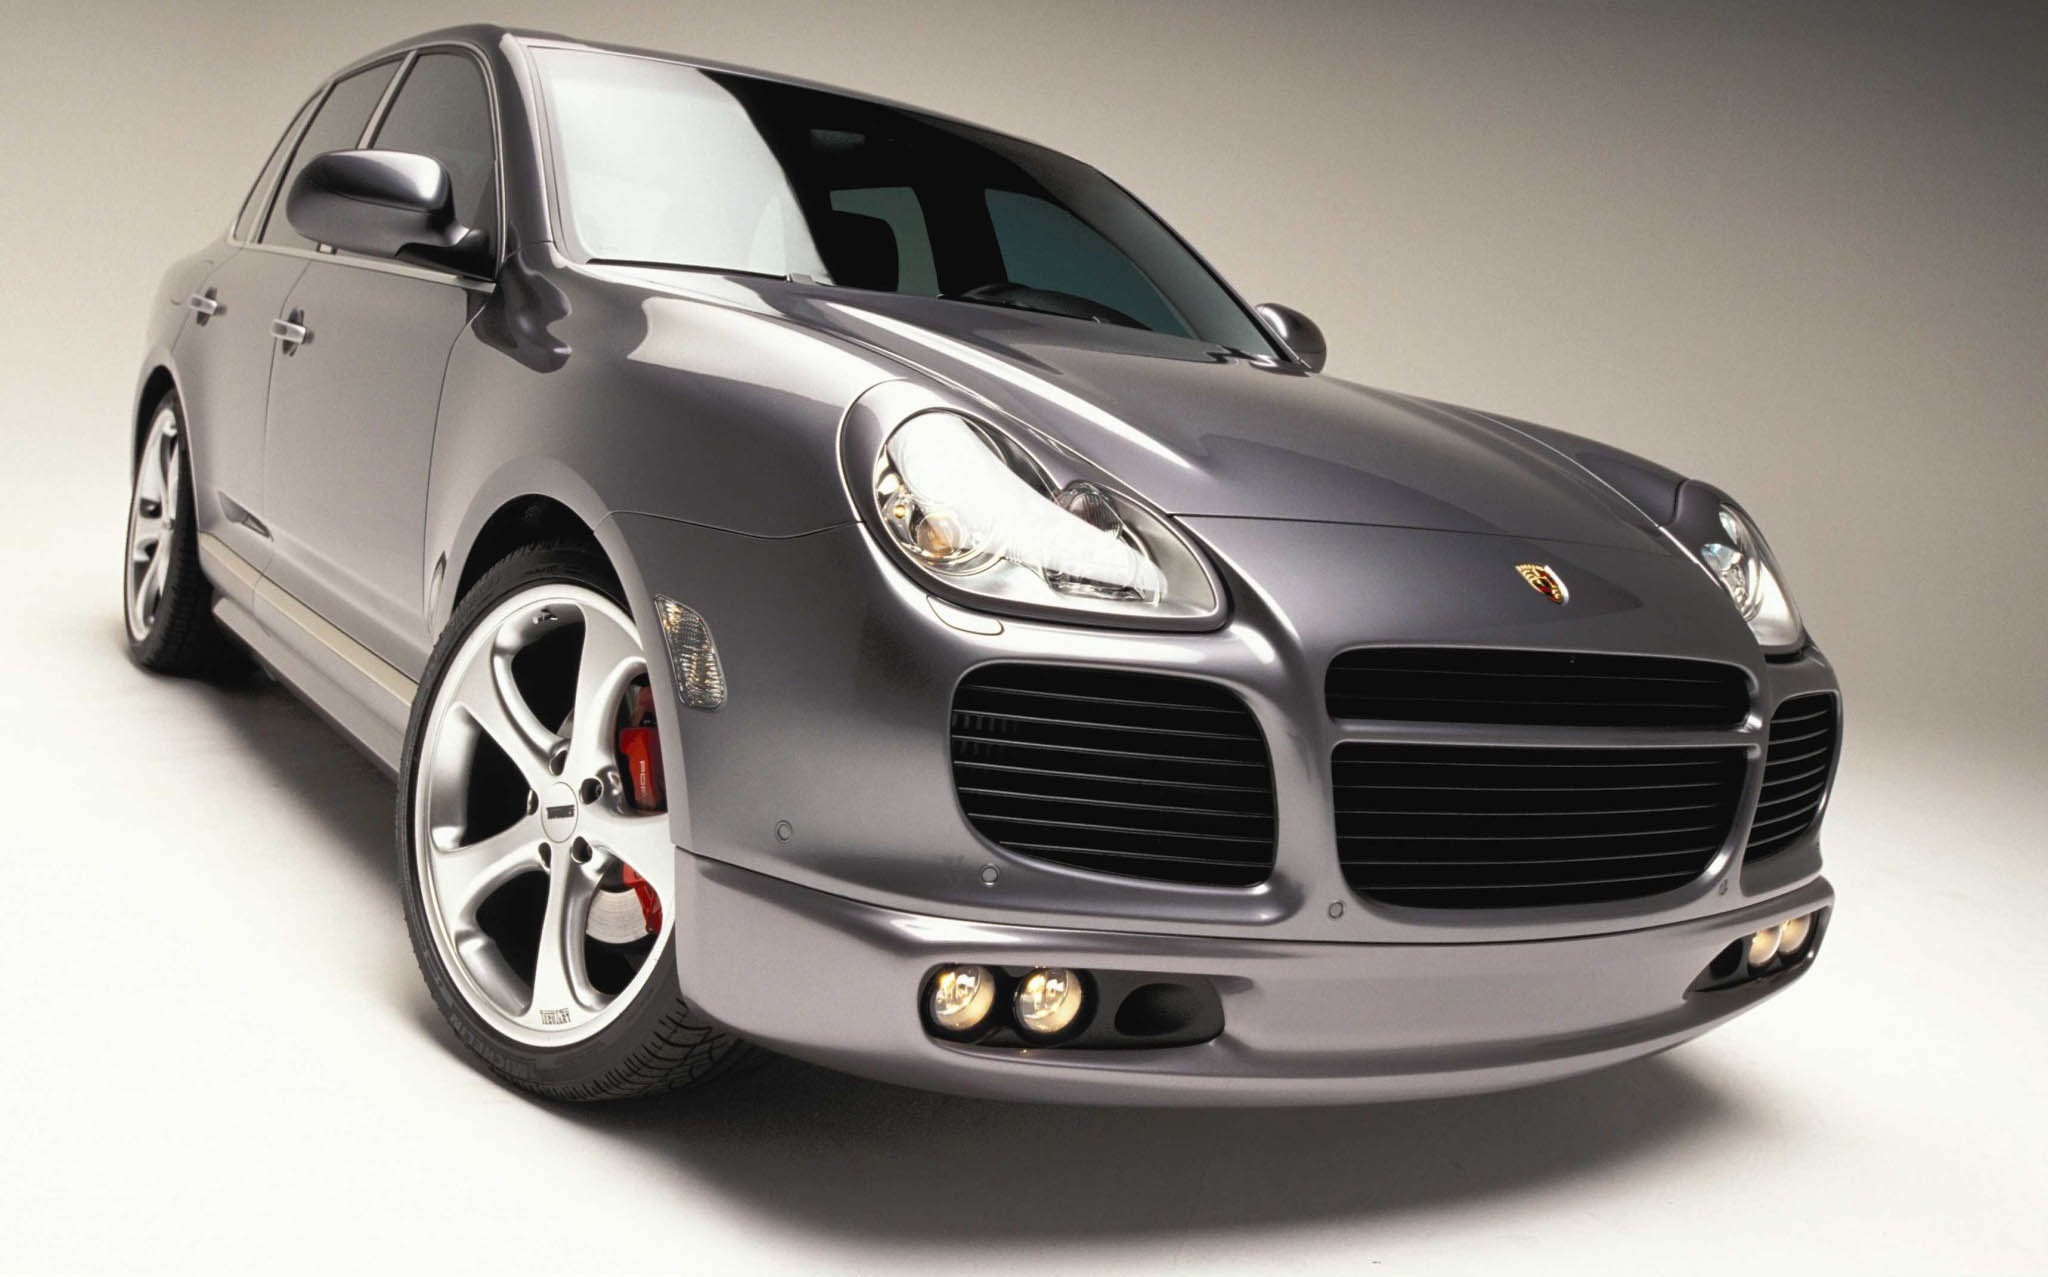 2004 techart cayenne turbo review top speed. Black Bedroom Furniture Sets. Home Design Ideas